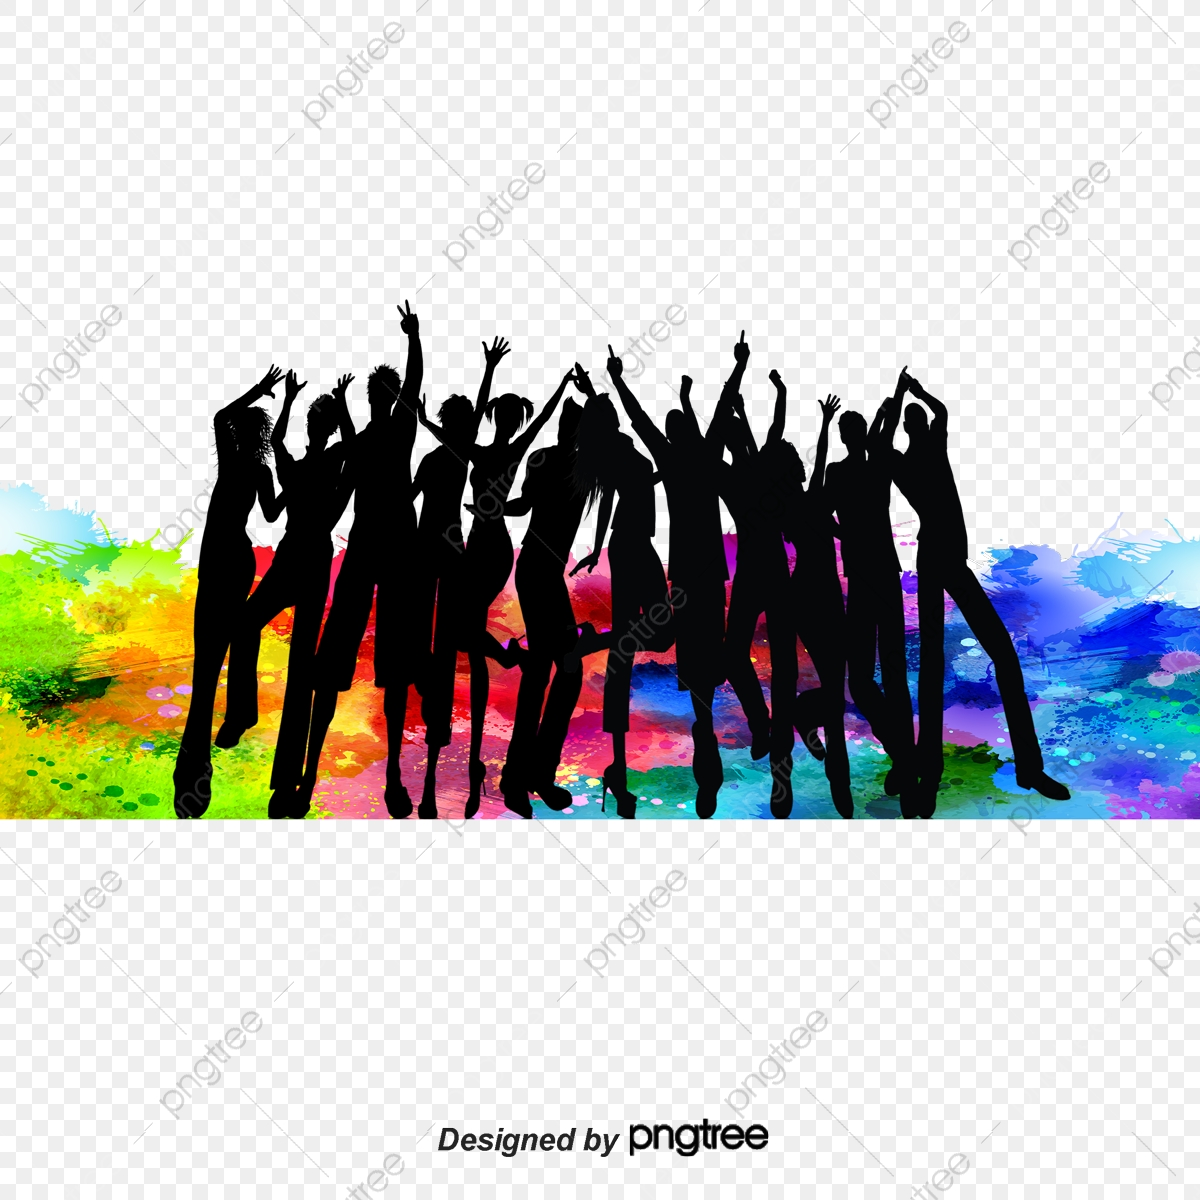 Silhouettes Of People Dancing, People Clipart, Dancing Clipart